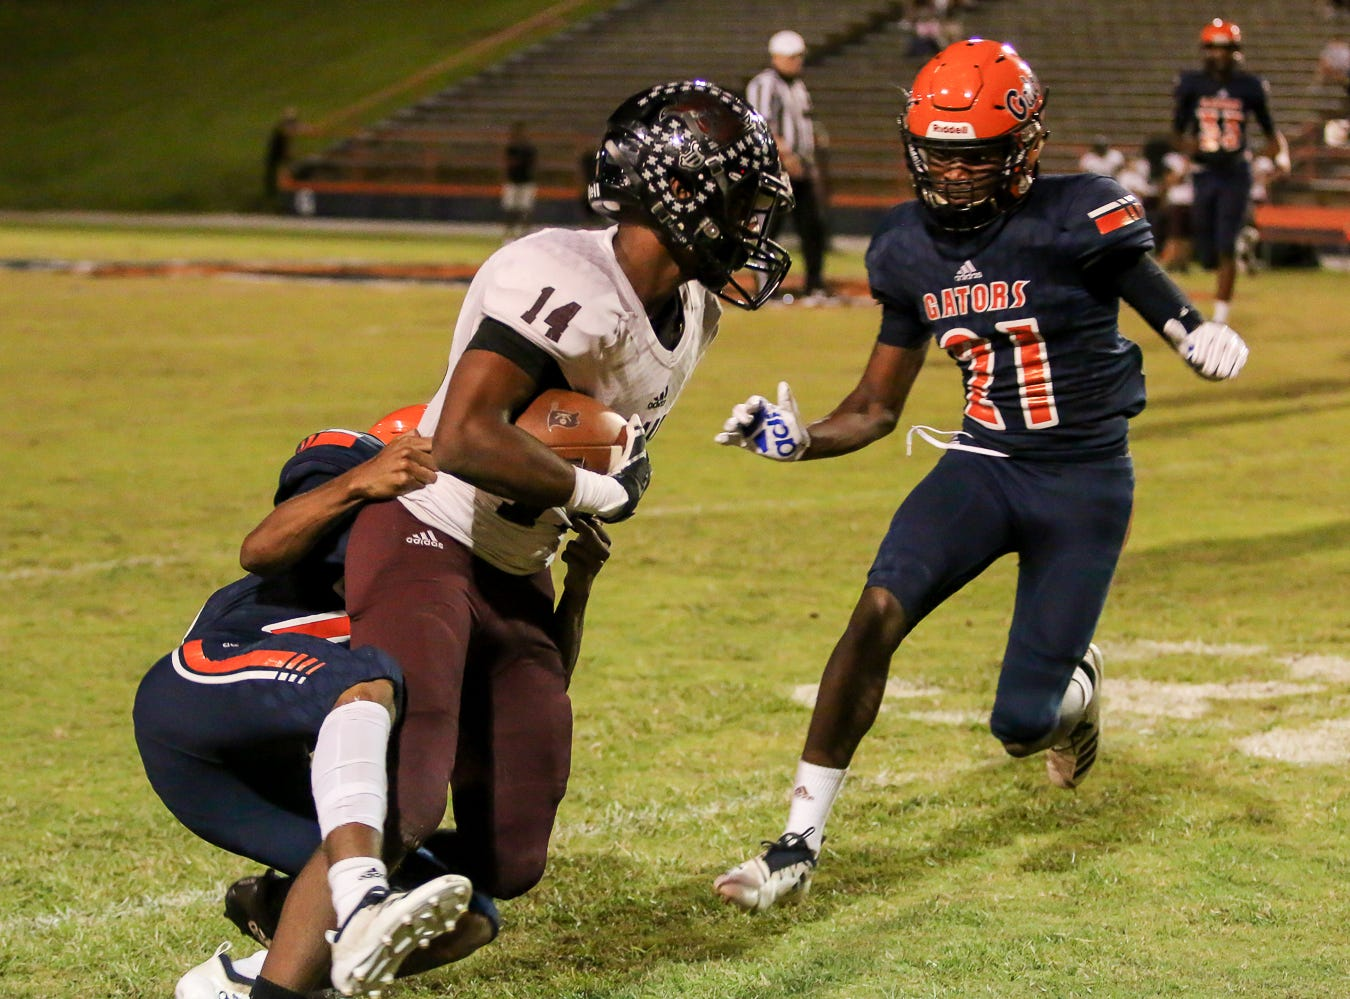 Navarre wide receiver Quinn Caballero (14) gets taken down by a Gators defender in the homecoming game at Escambia High School on Friday, October 5, 2018.